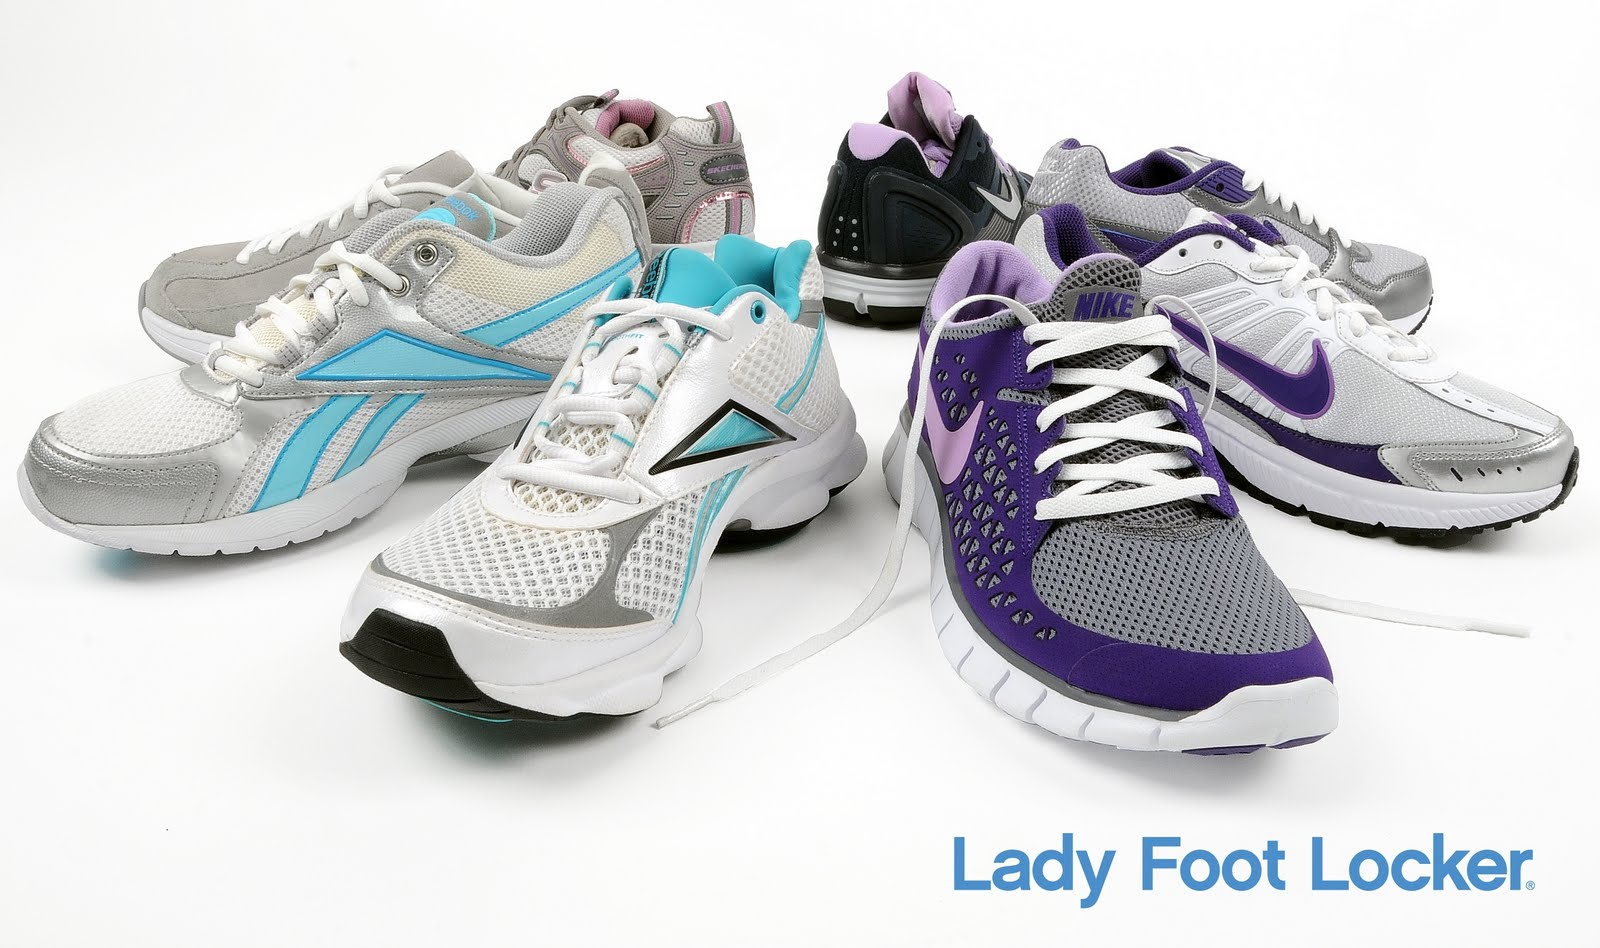 lady foot locker analysis The athletic stores segment sells athletic footwear and apparel under the foot locker, lady foot locker, six:02, kids foot locker, champs sports, footaction, runners point, and sidestep brands.